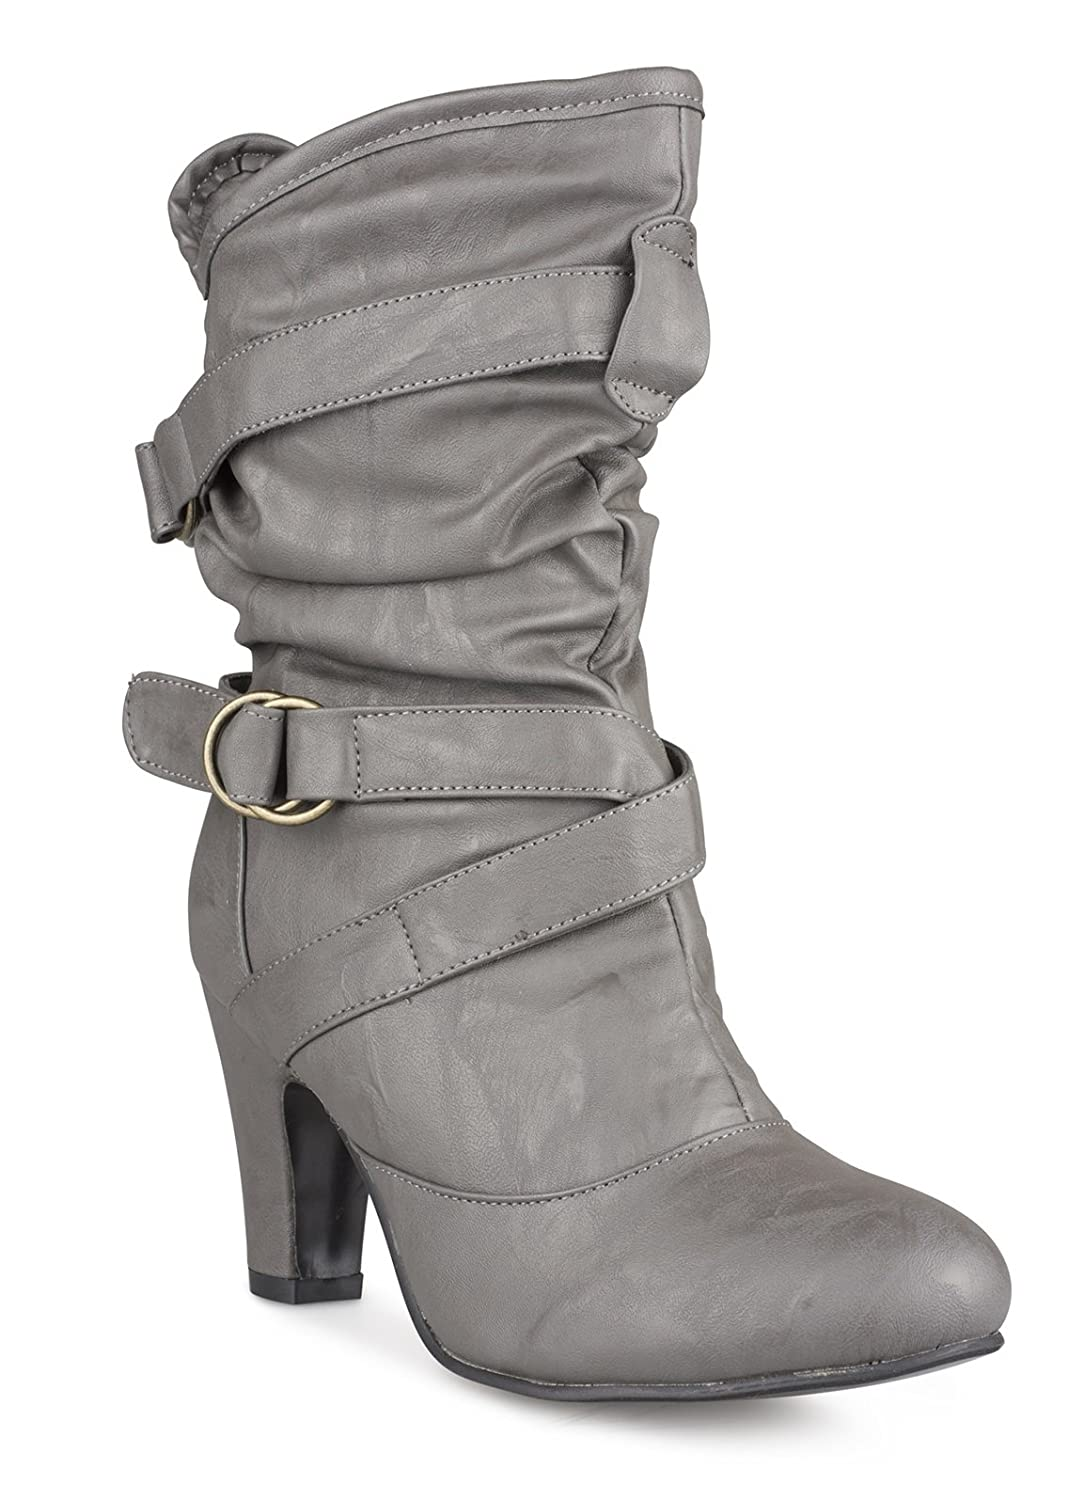 Twisted Women's Lillian Wide Width, Wide Calf Faux Leather High Heeled Fashion Mid Calf Boots